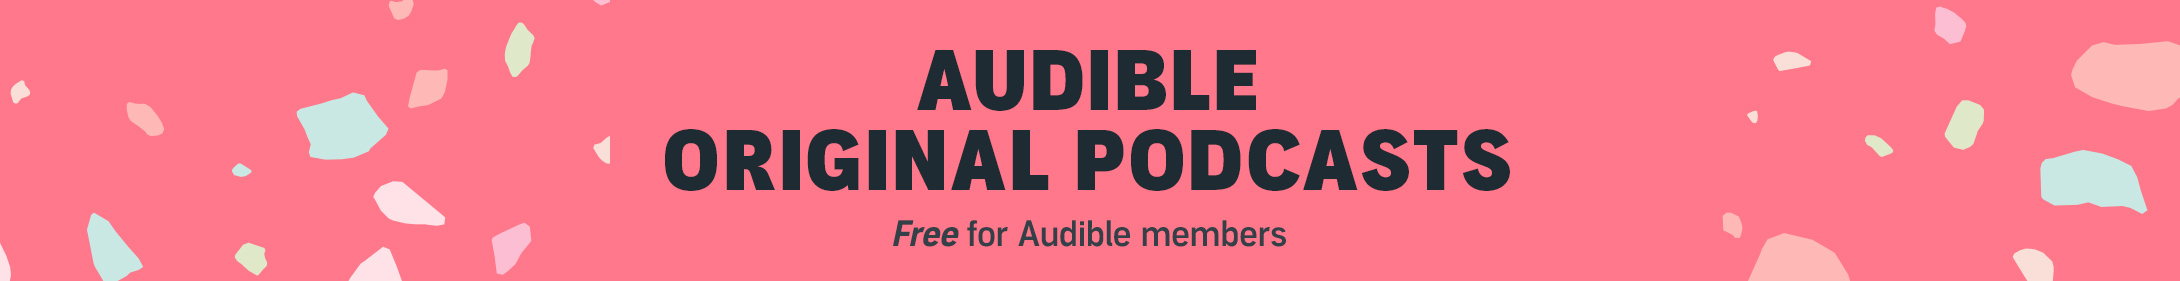 Audible Original Podcasts, free for Audible members